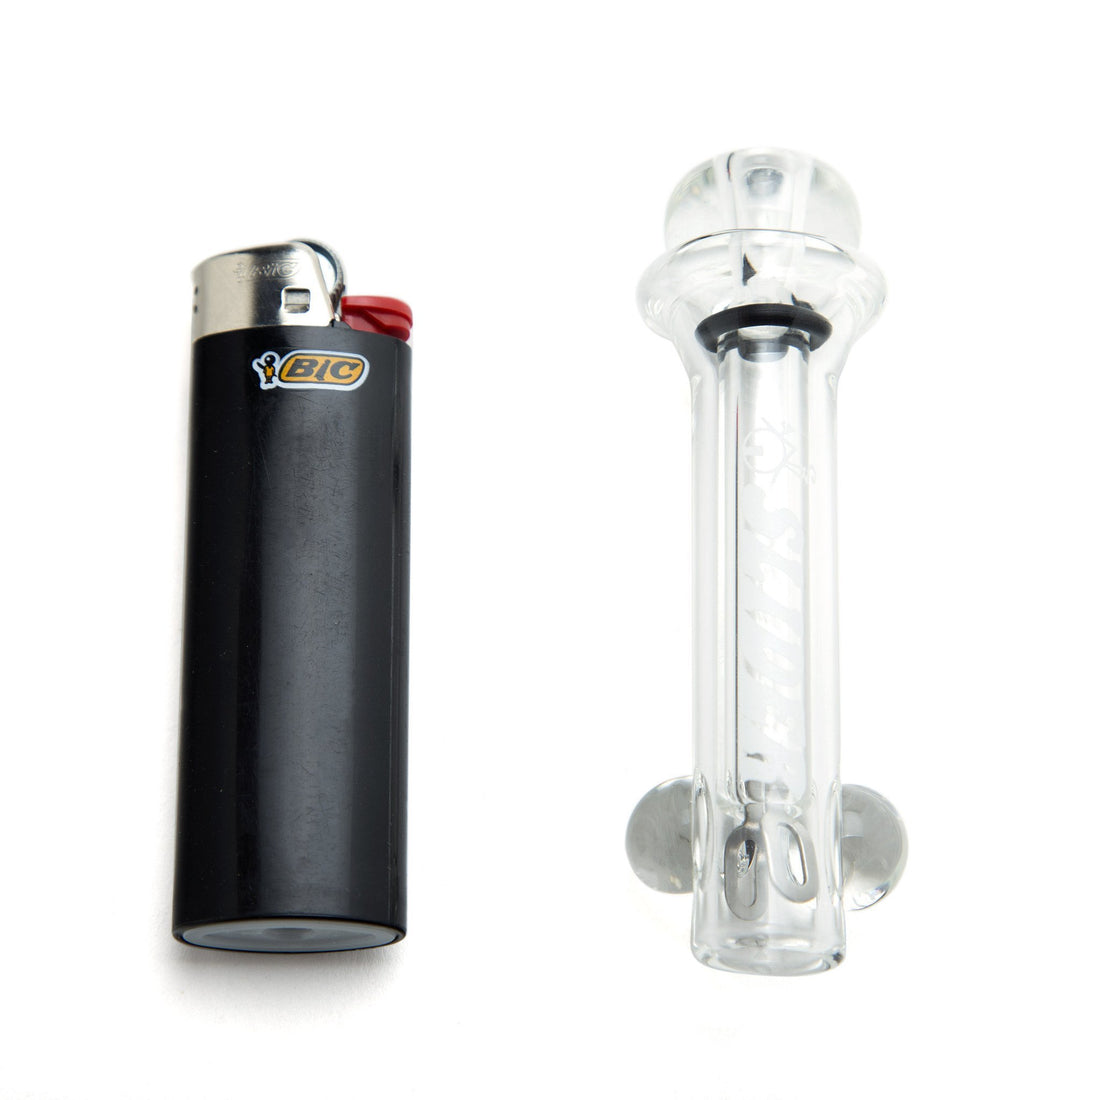 Home Blown Glass Magnum Blunt Slider - 420 Science - The most trusted online smoke shop.